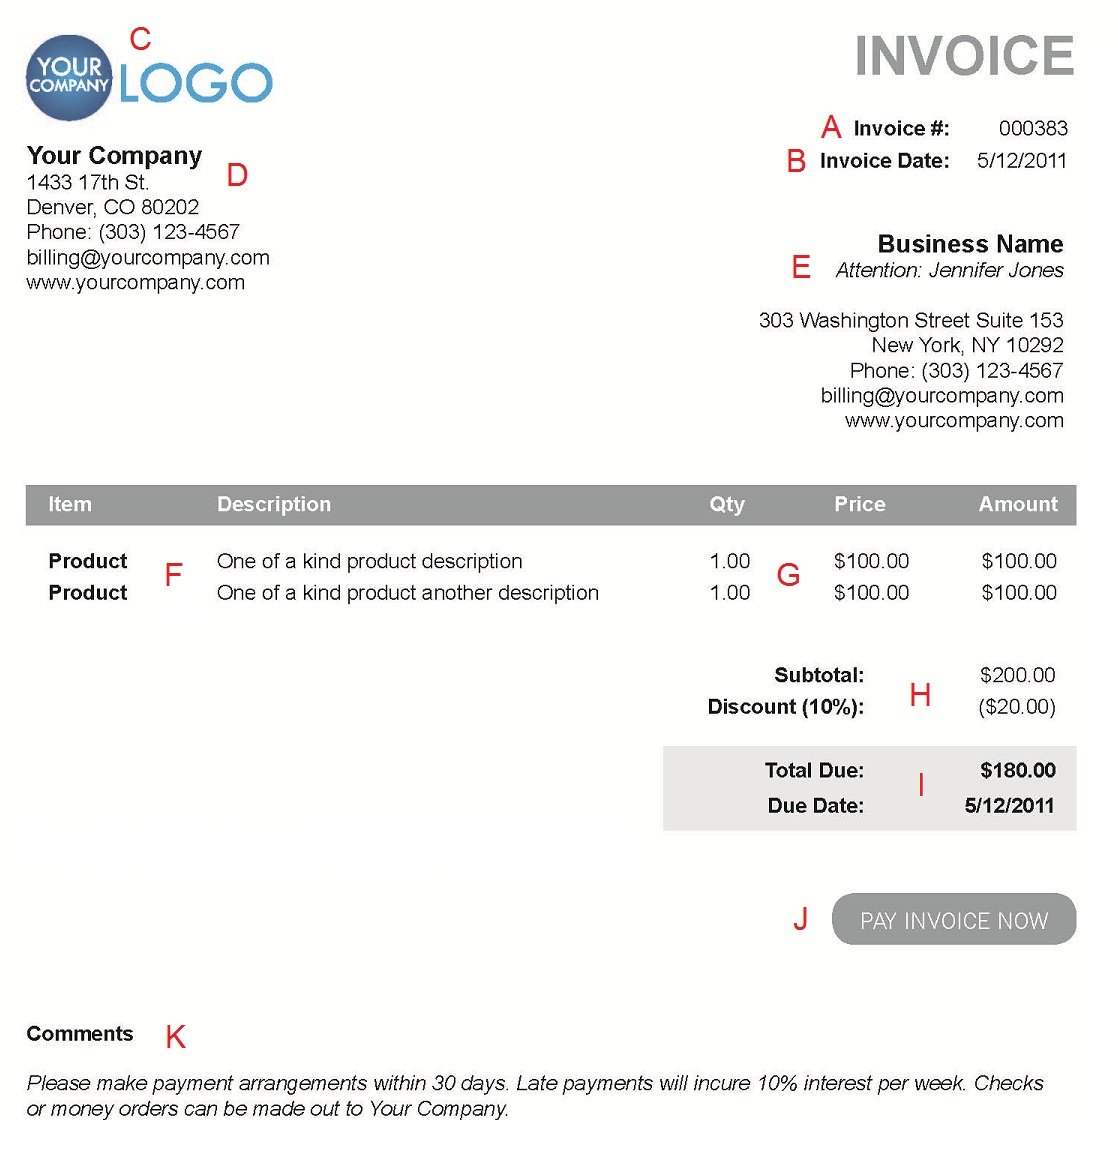 Pigbrotherus  Inspiring The  Different Sections Of An Electronic Payment Invoice With Foxy A  With Beauteous Po Invoice Also Small Business Invoice Software In Addition Invoice Templates For Word And Invoice Finance As Well As Invoice Template Excel Download Free Additionally Invoice Pricing From Paysimplecom With Pigbrotherus  Foxy The  Different Sections Of An Electronic Payment Invoice With Beauteous A  And Inspiring Po Invoice Also Small Business Invoice Software In Addition Invoice Templates For Word From Paysimplecom